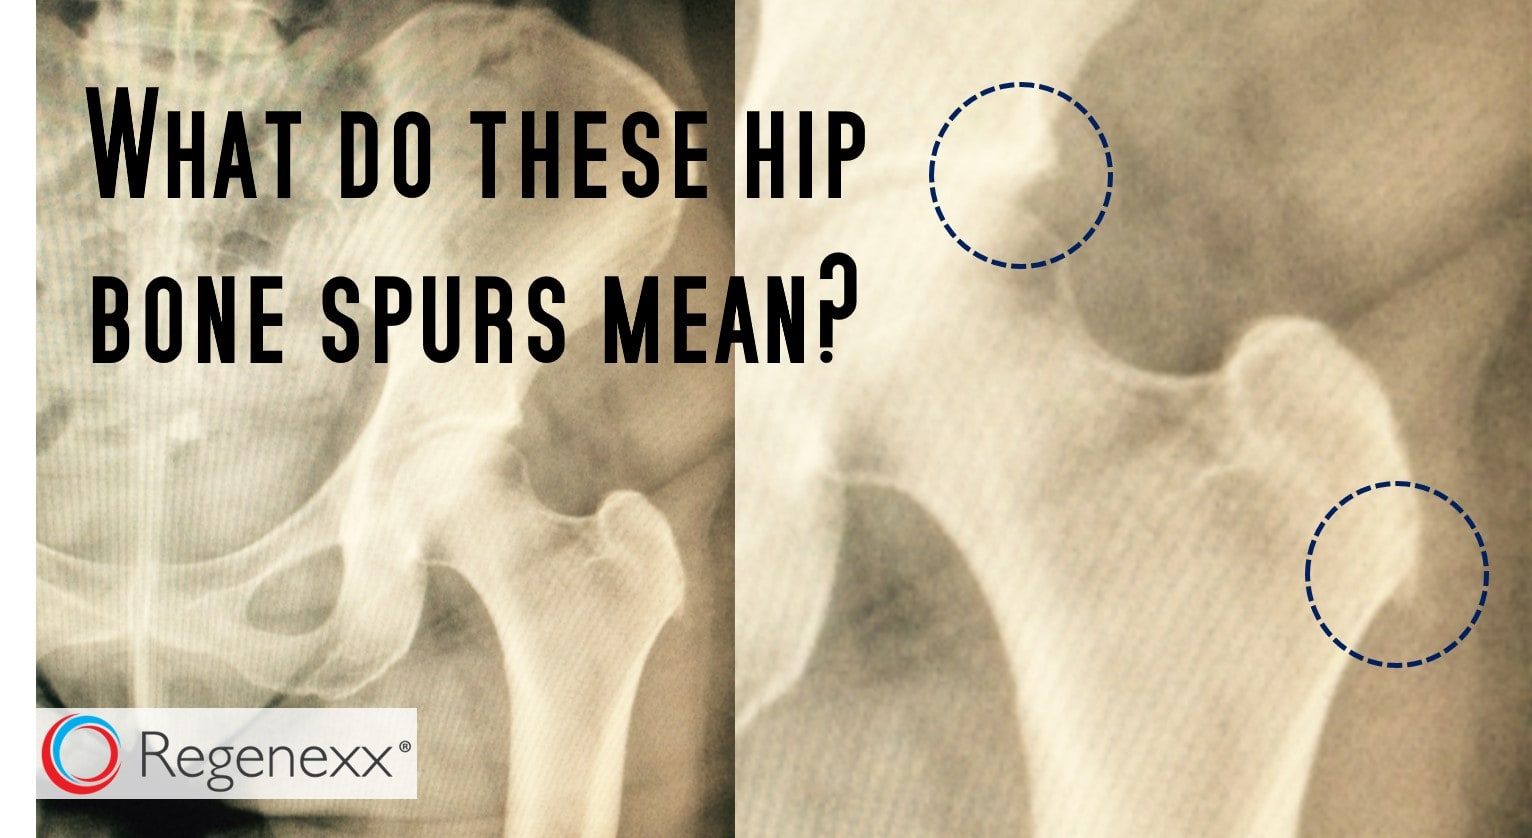 bone spur pain - an xray may be telling the wrong story